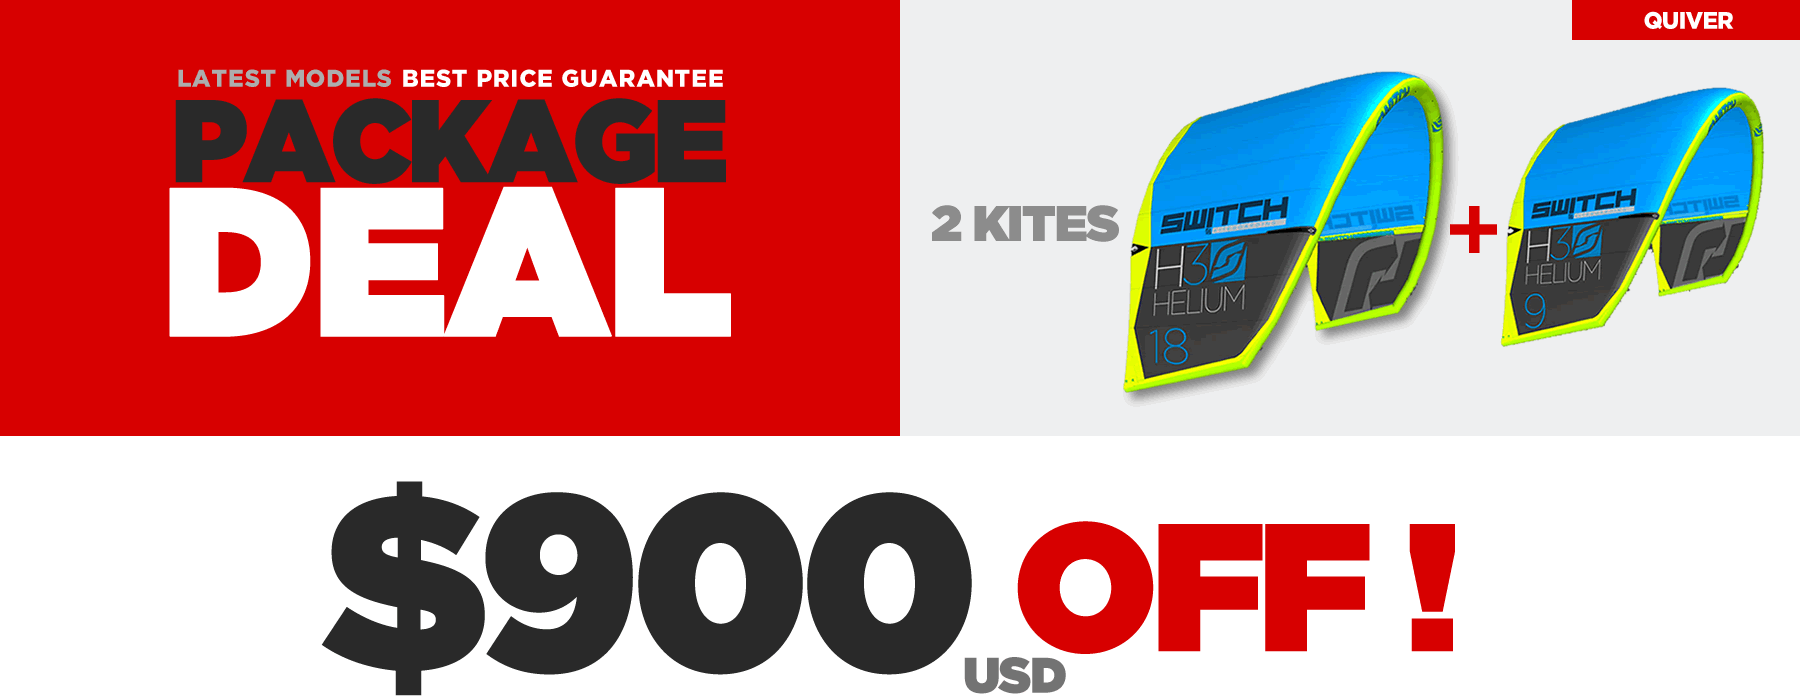 Kiteboarding Package Deals